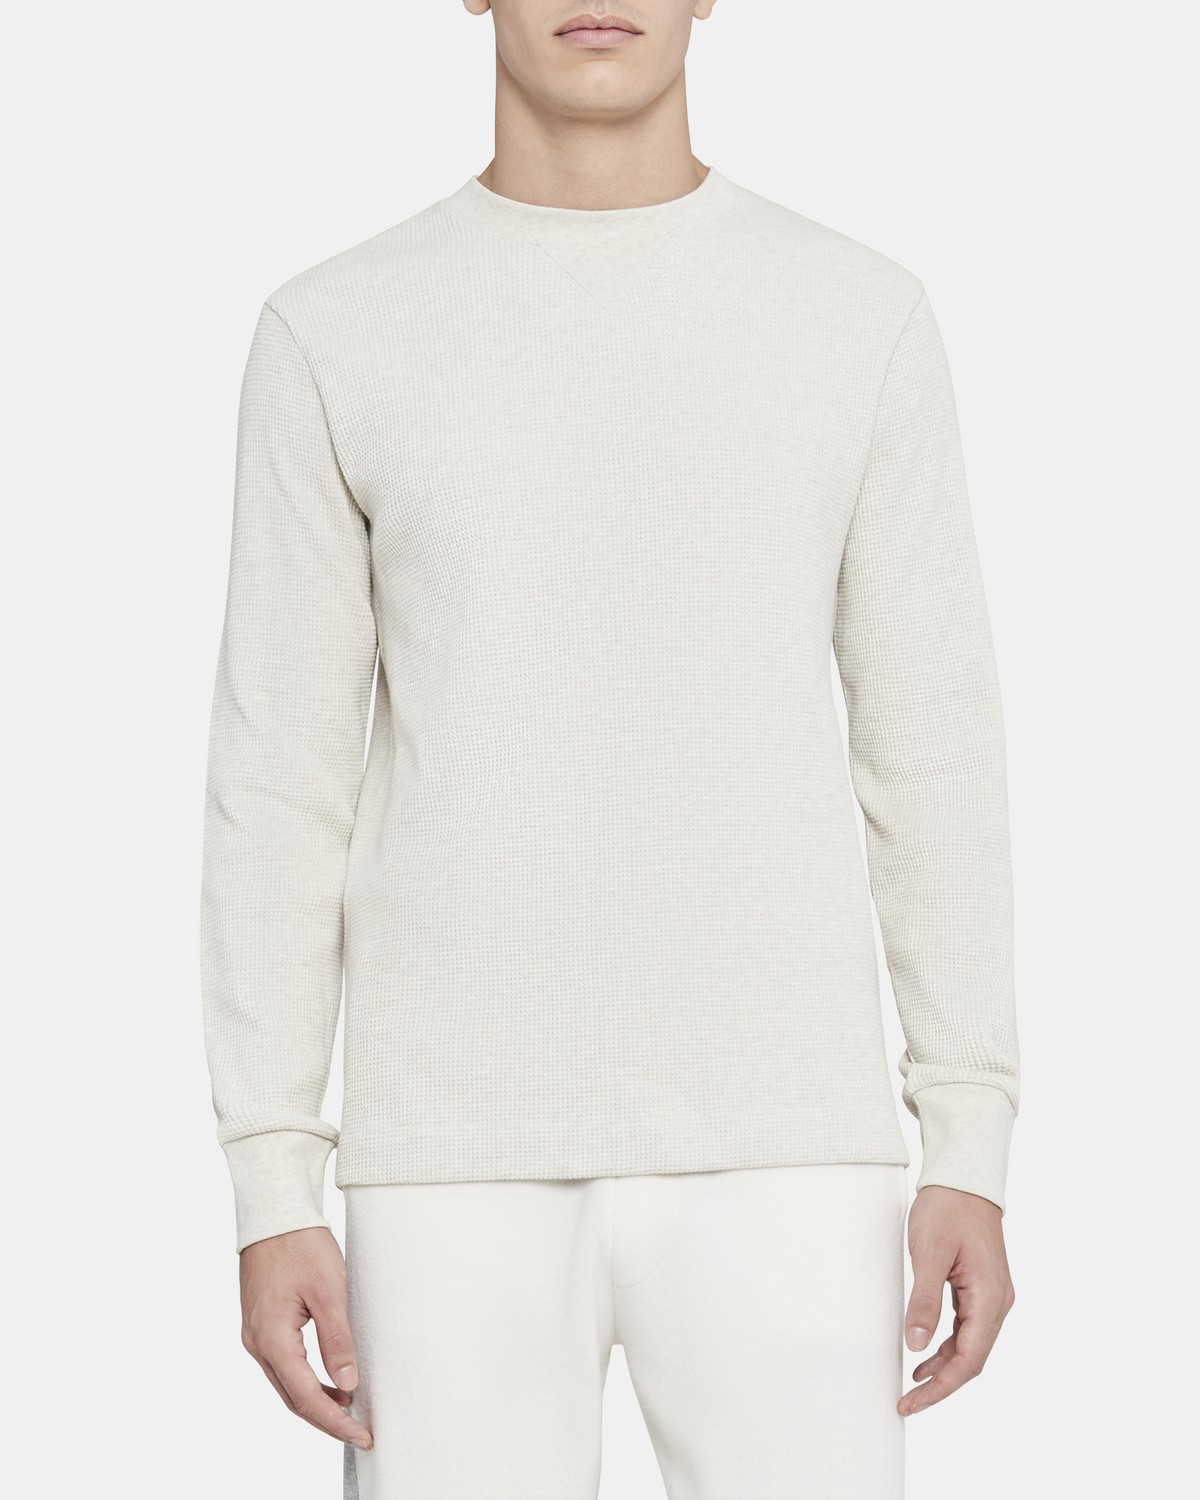 Crewneck Pullover in Waffle-Knit Cotton